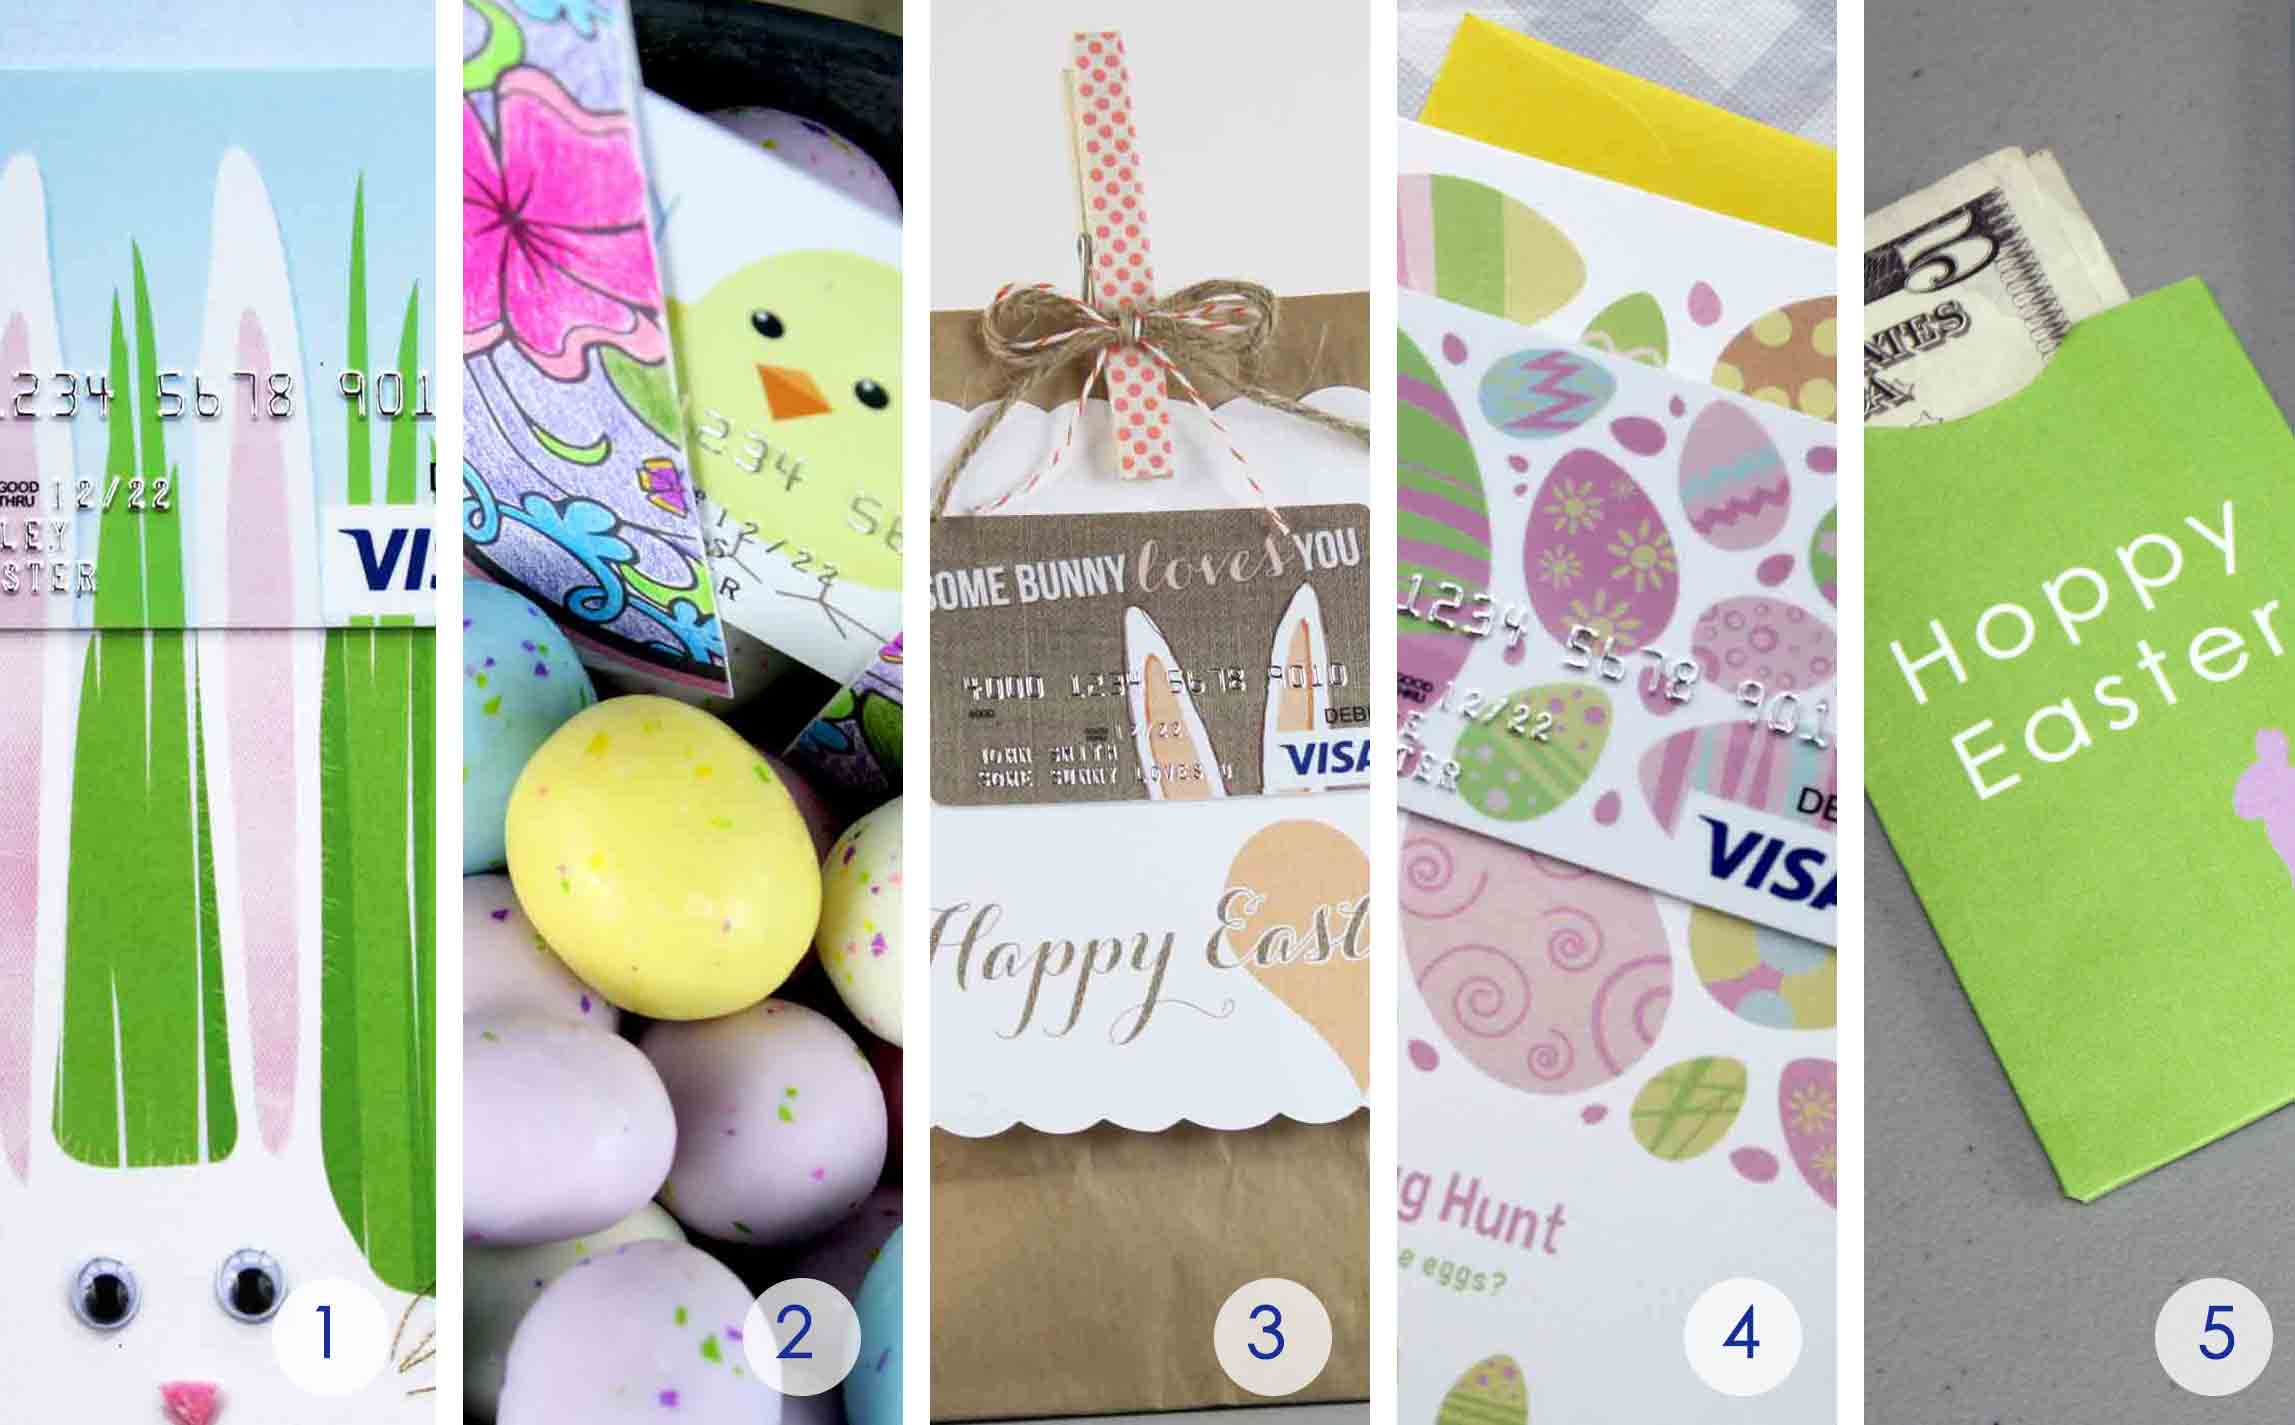 5 free easter gift card holders to print at home gcg round of up free easter gift card printables negle Choice Image